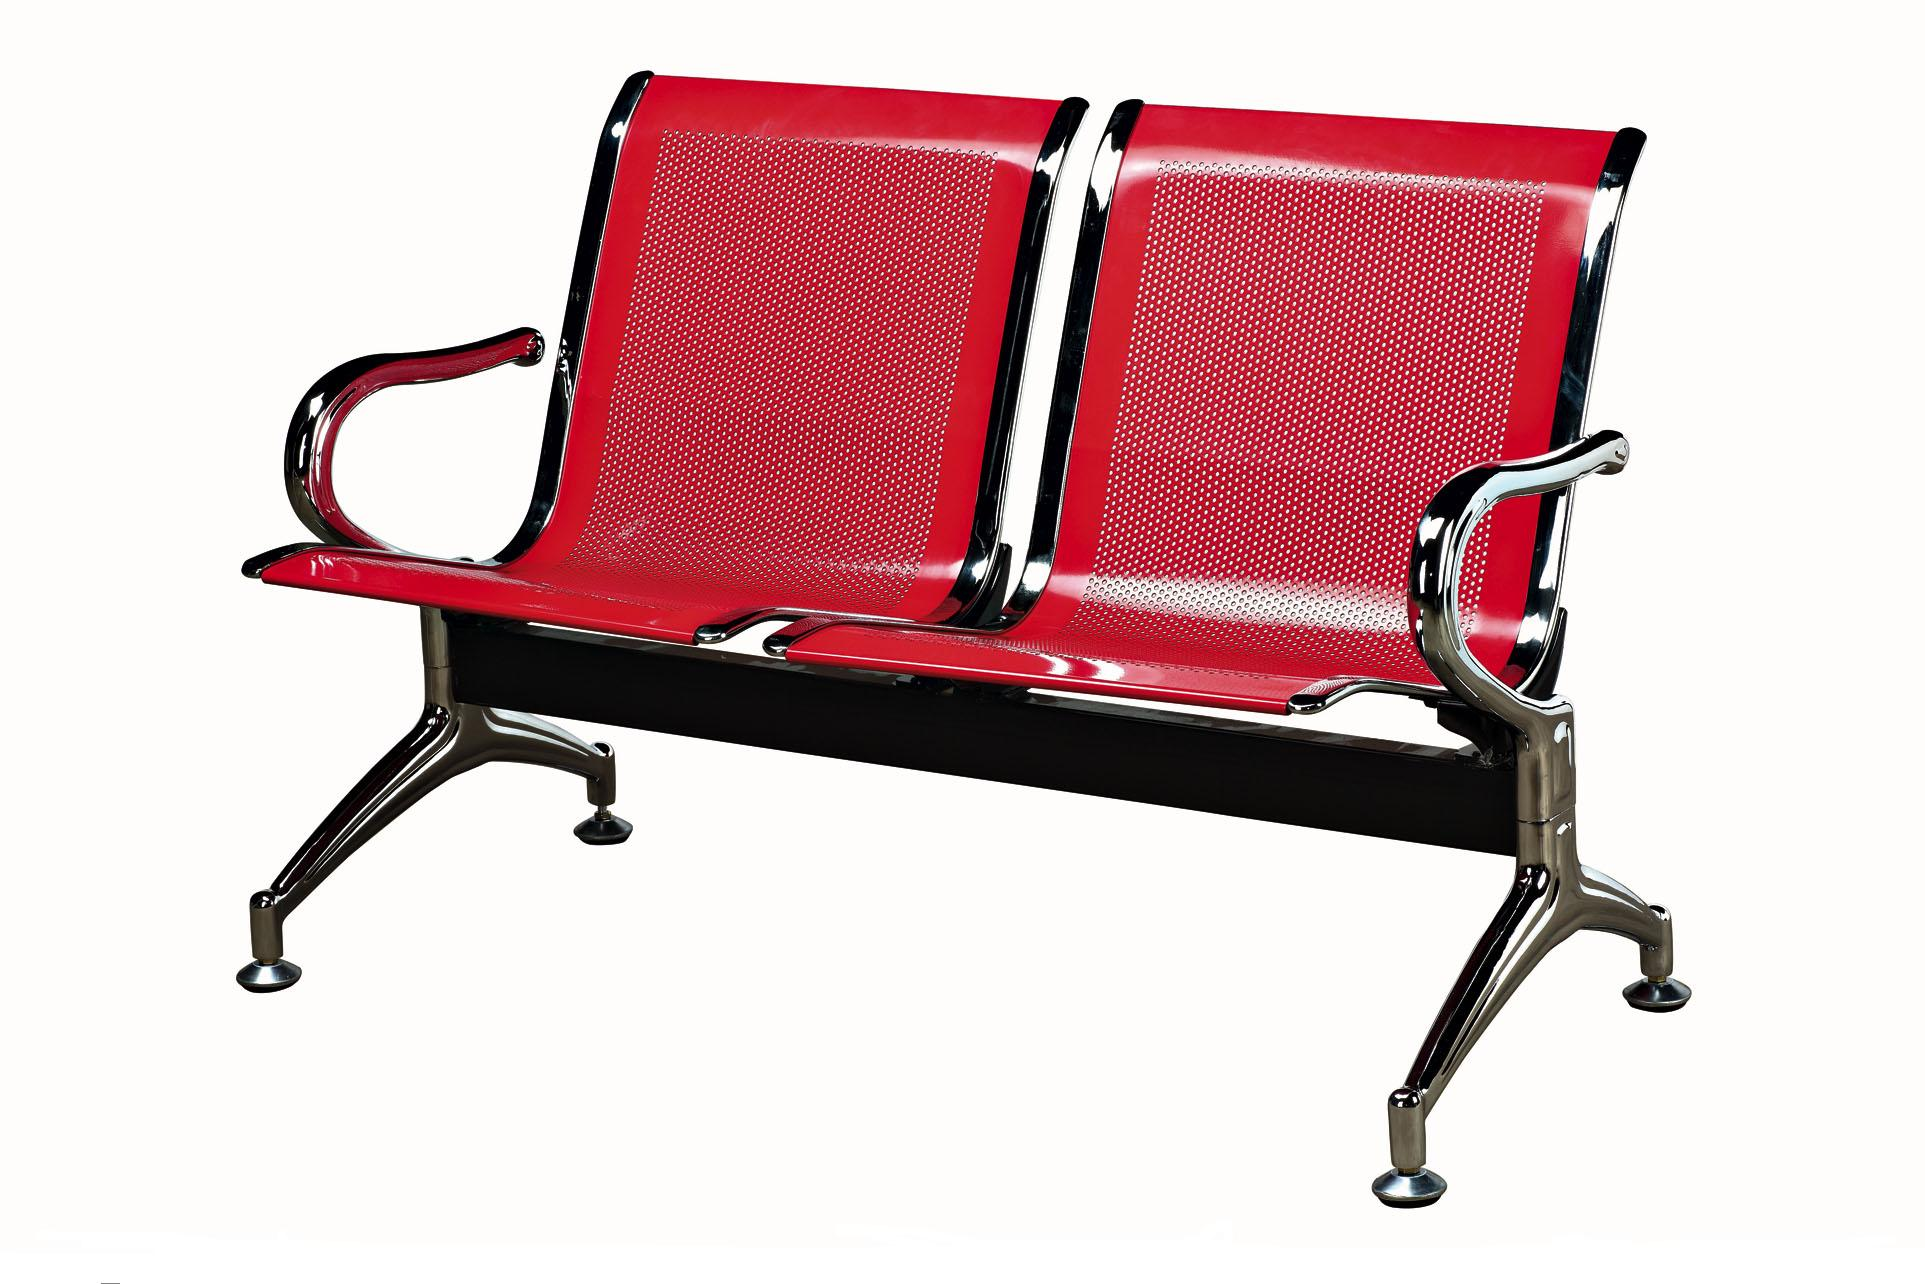 Seater 2 Image